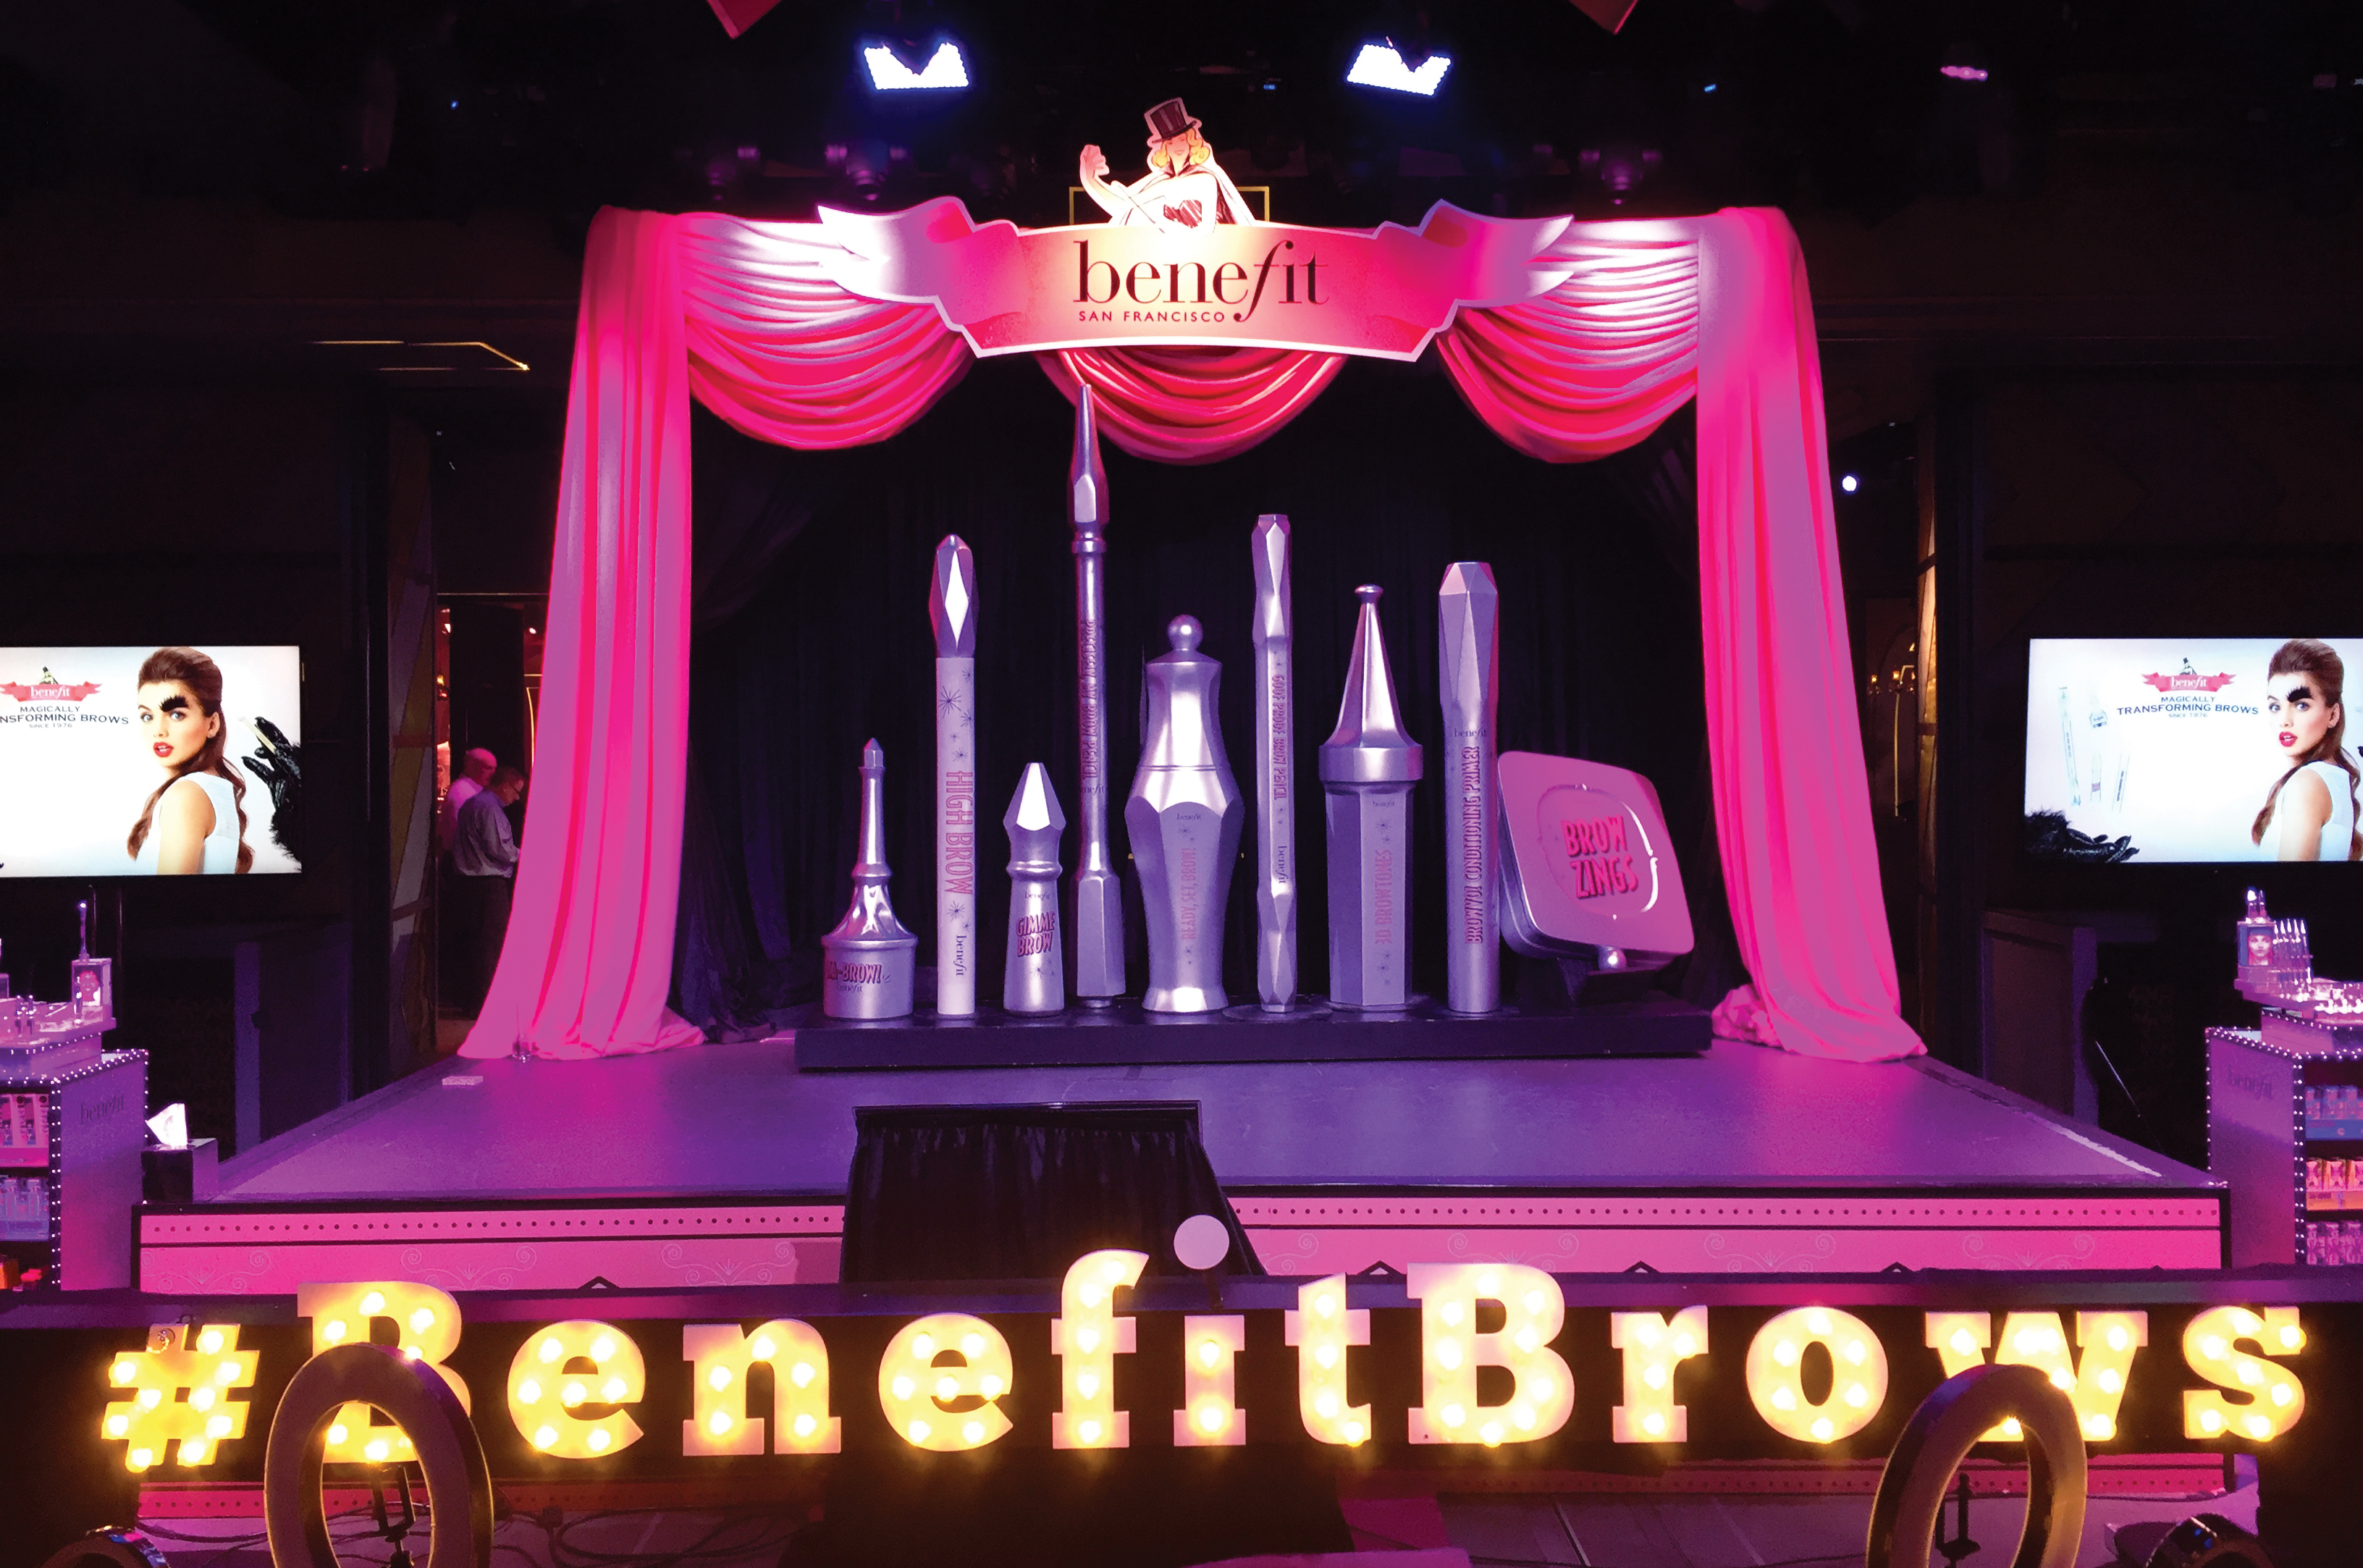 Benefit launch party in Las Vegas.